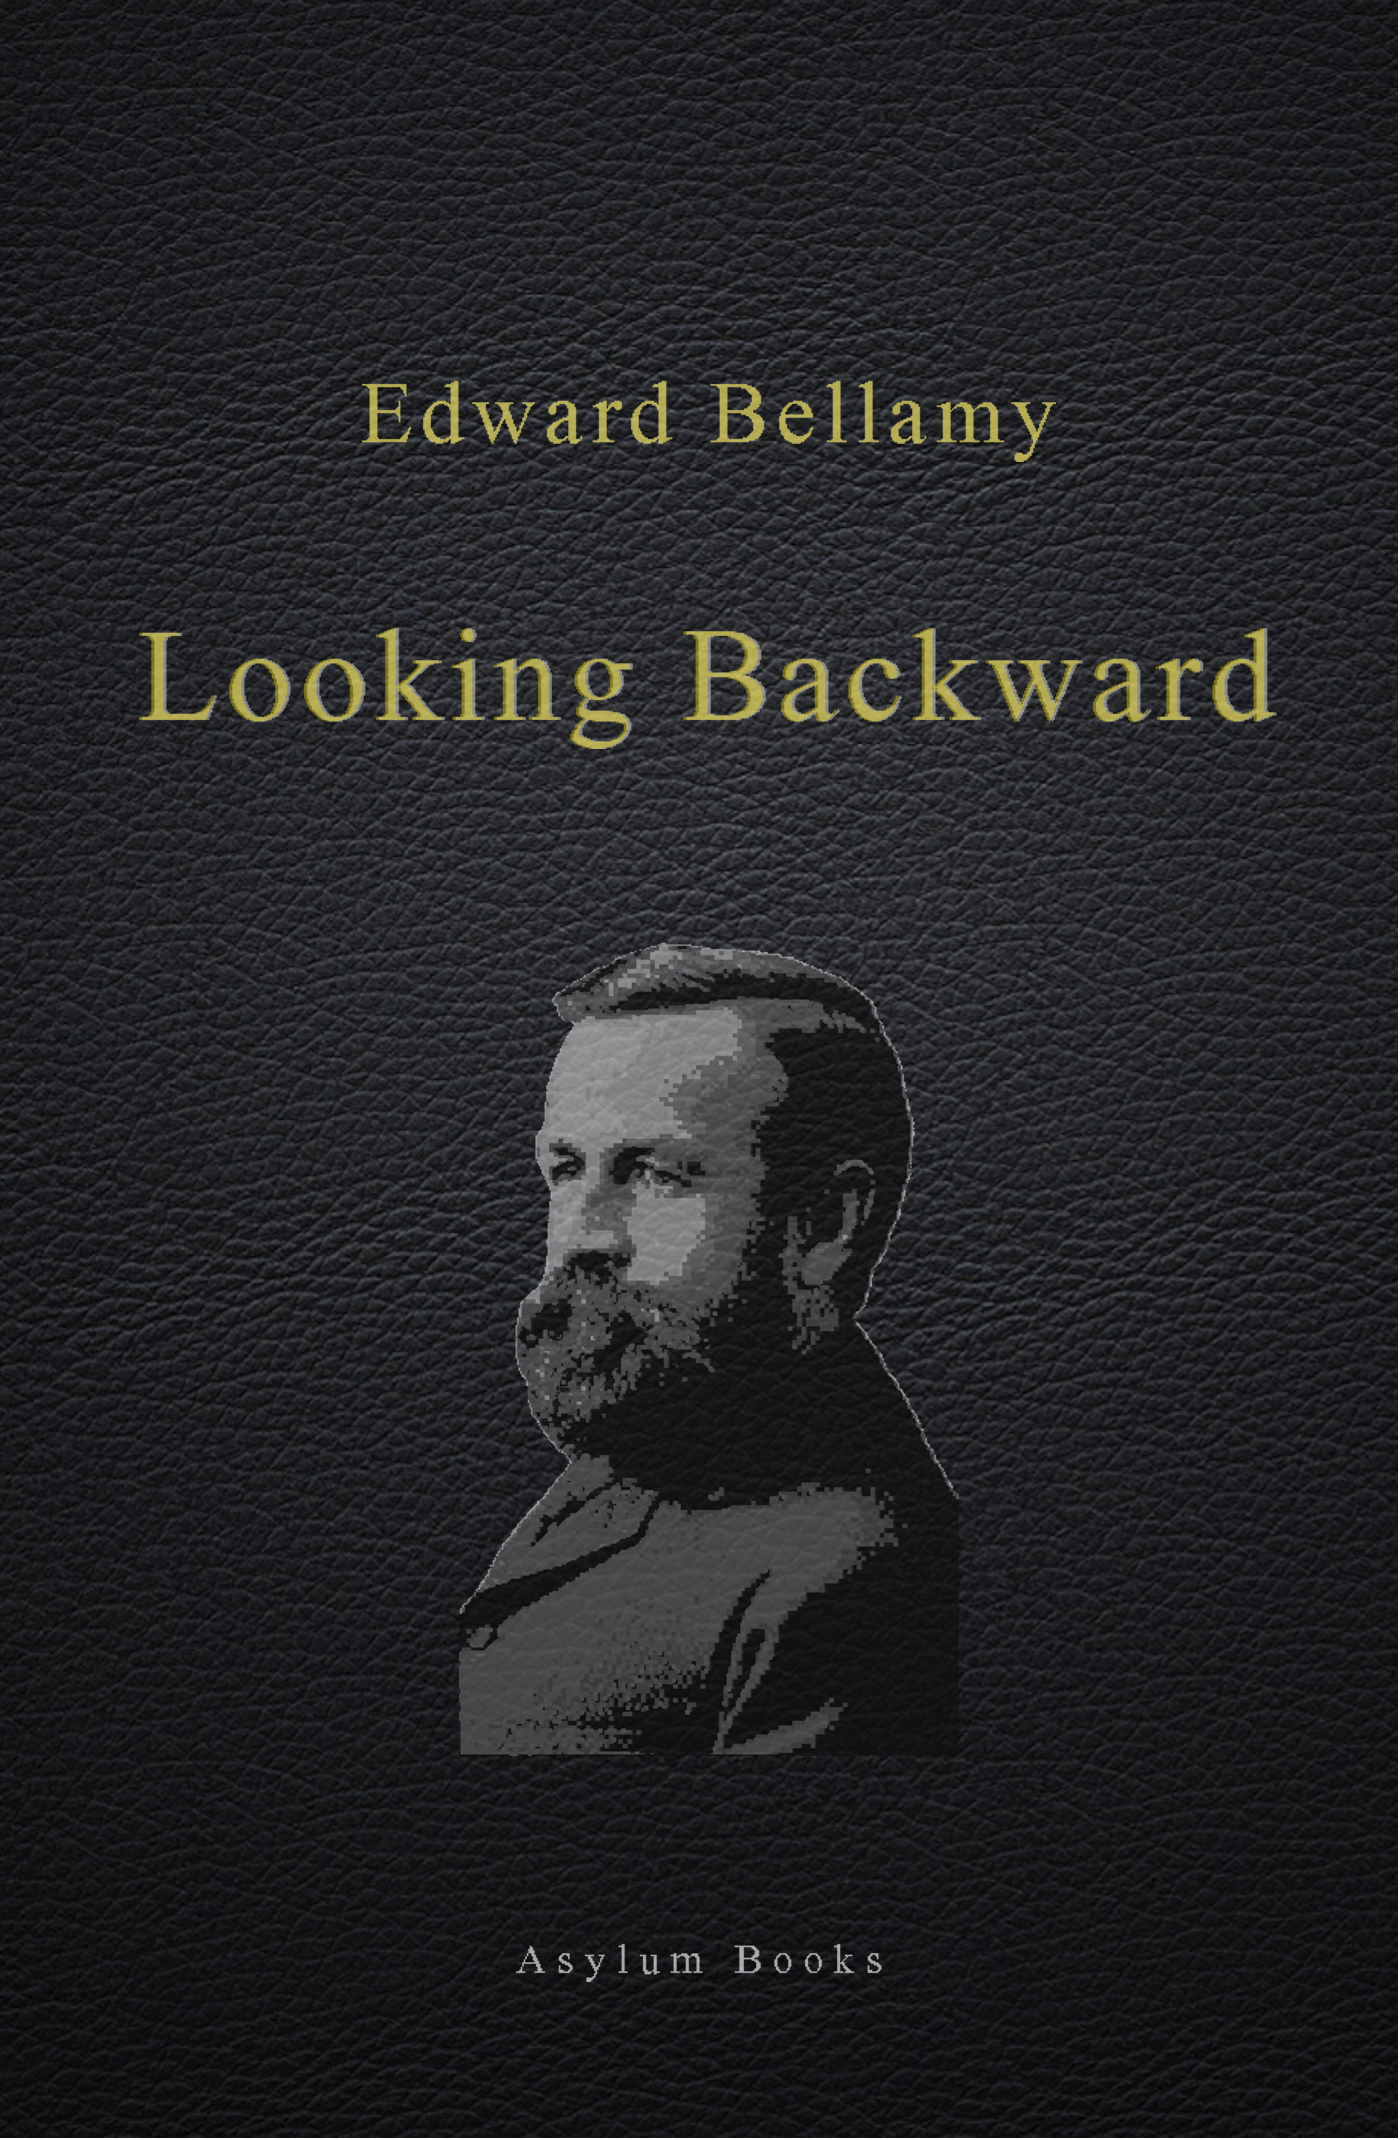 1888 1988 backward bellamy edward essay looking